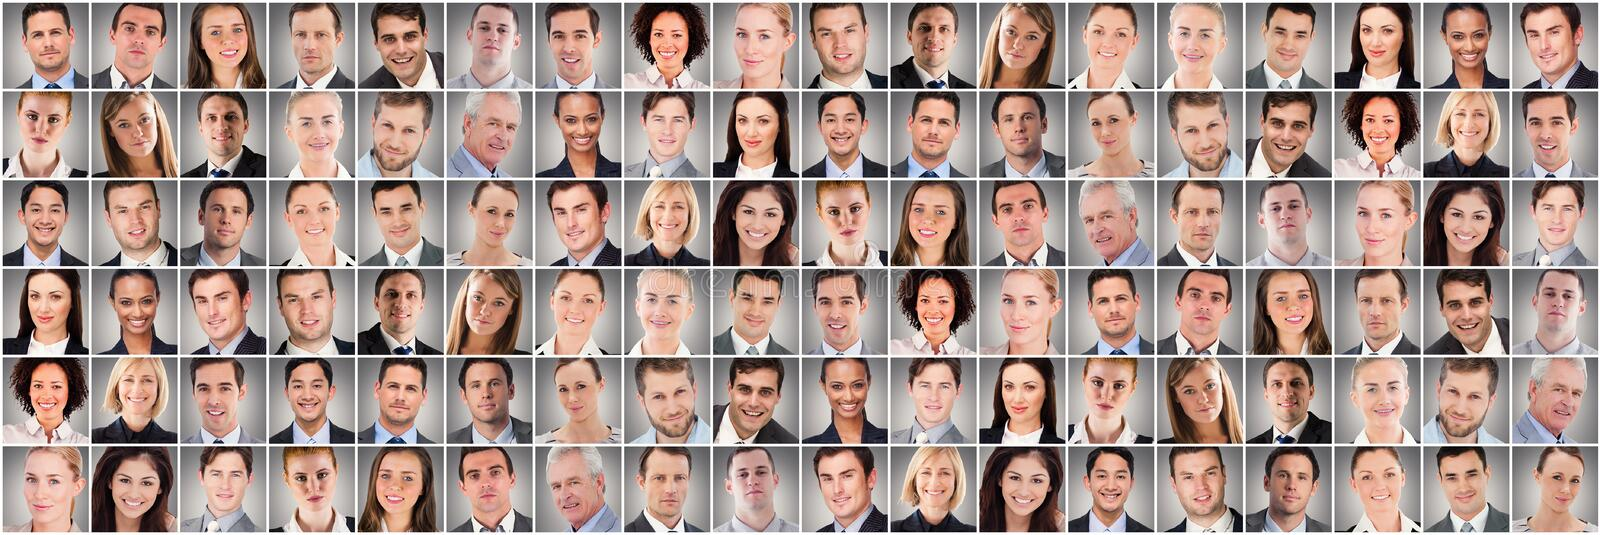 People collage portrait very wide stock photography